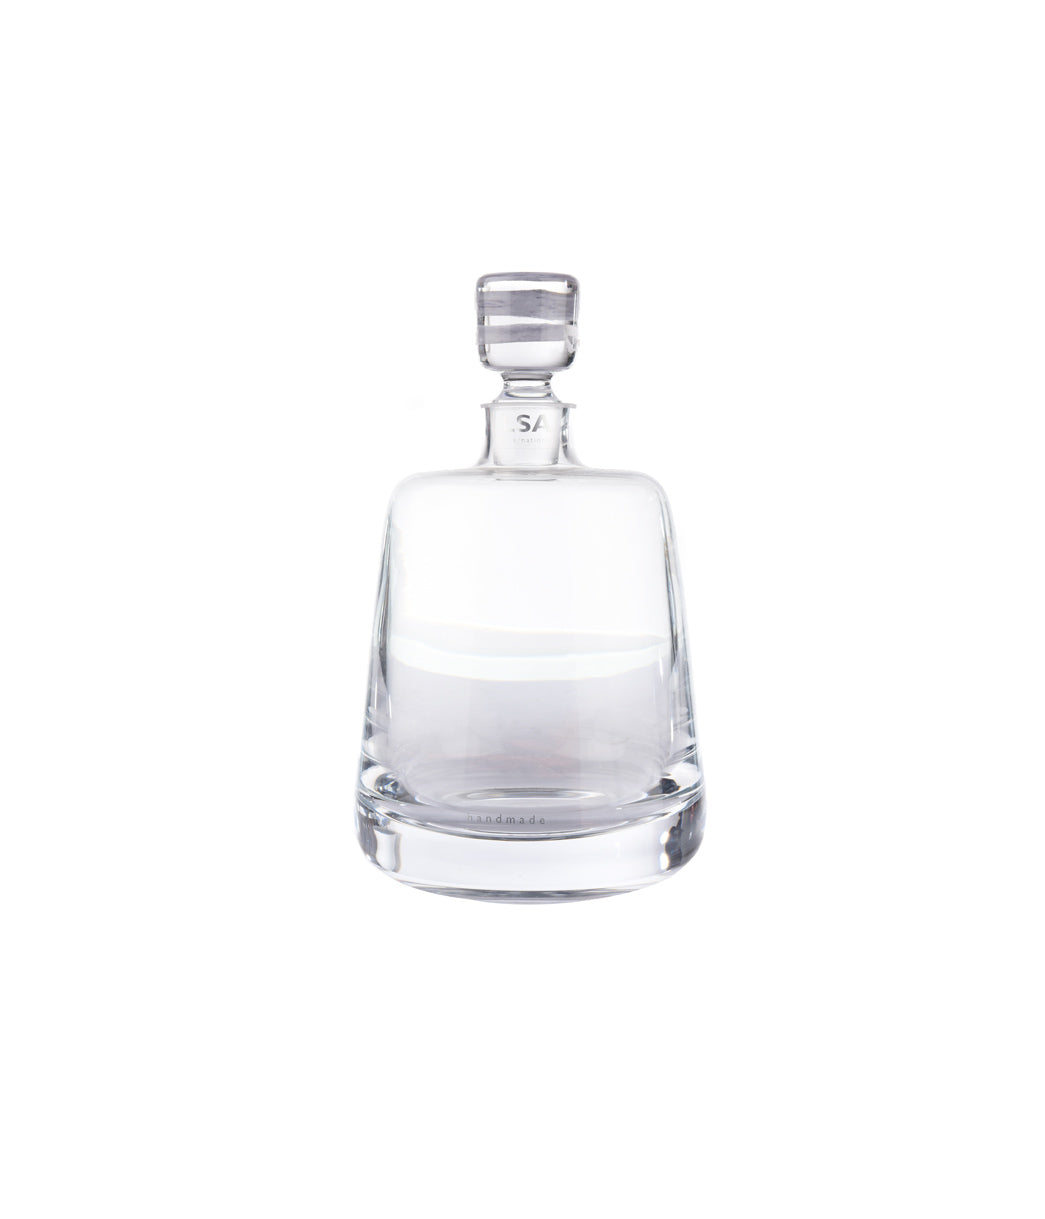 Madrid decanter